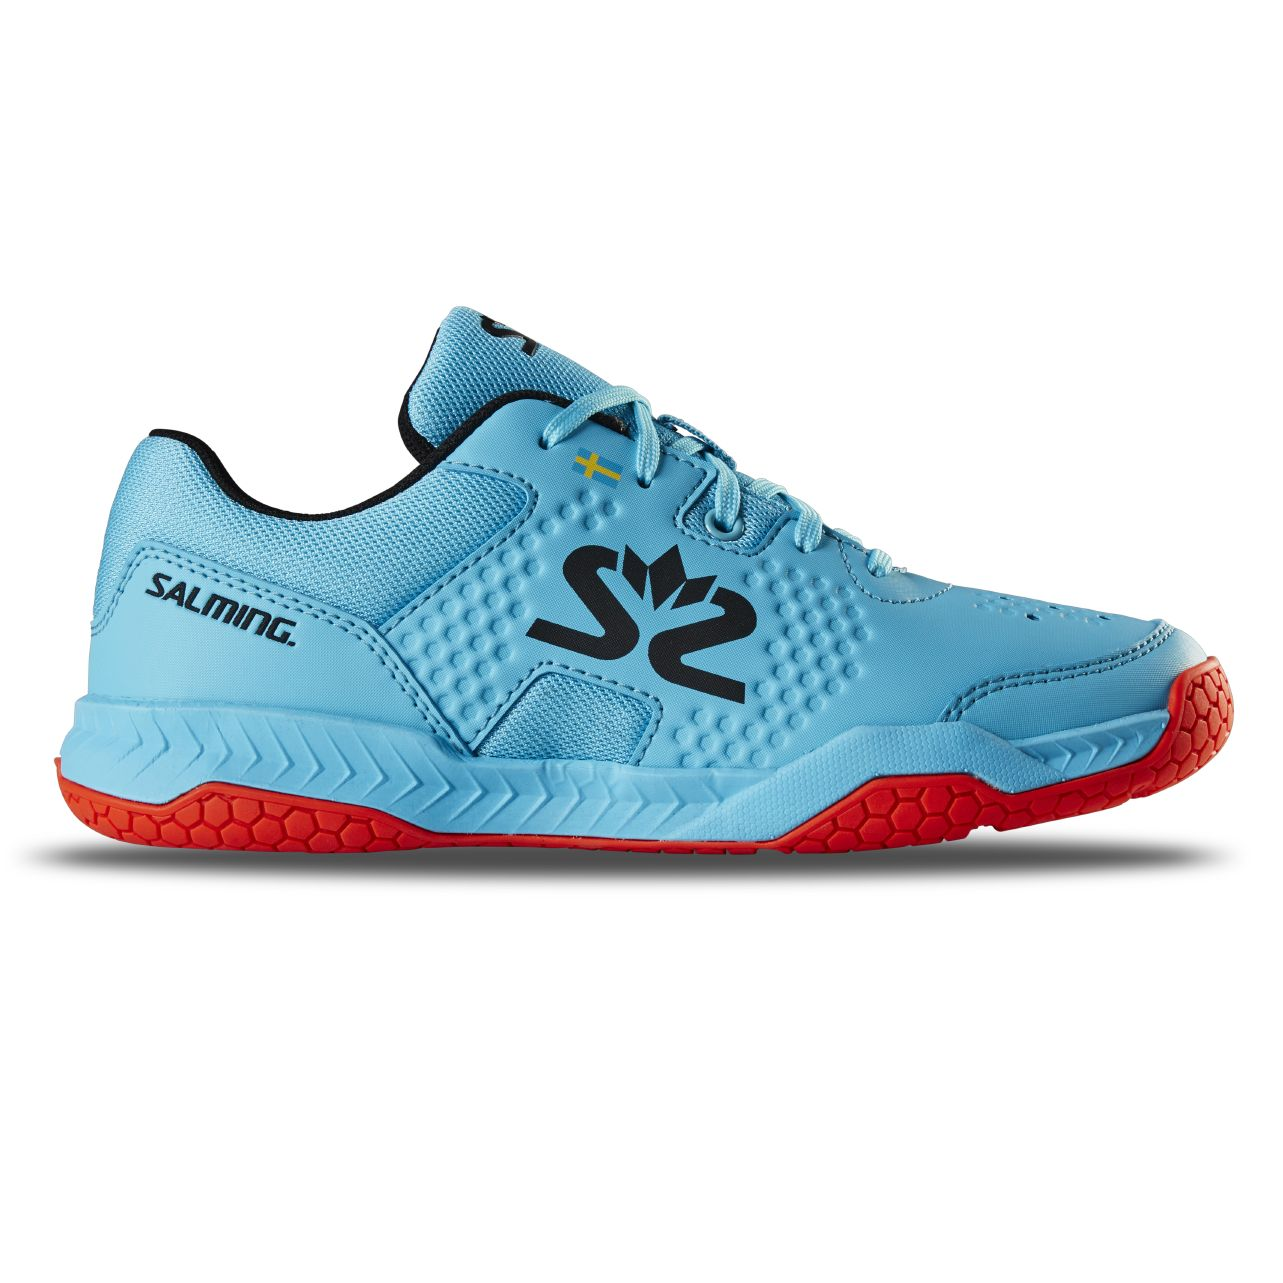 Salming Hawk Court Shoe Junior Blue/Red 4,5 UK - 37 EUR - 24 cm